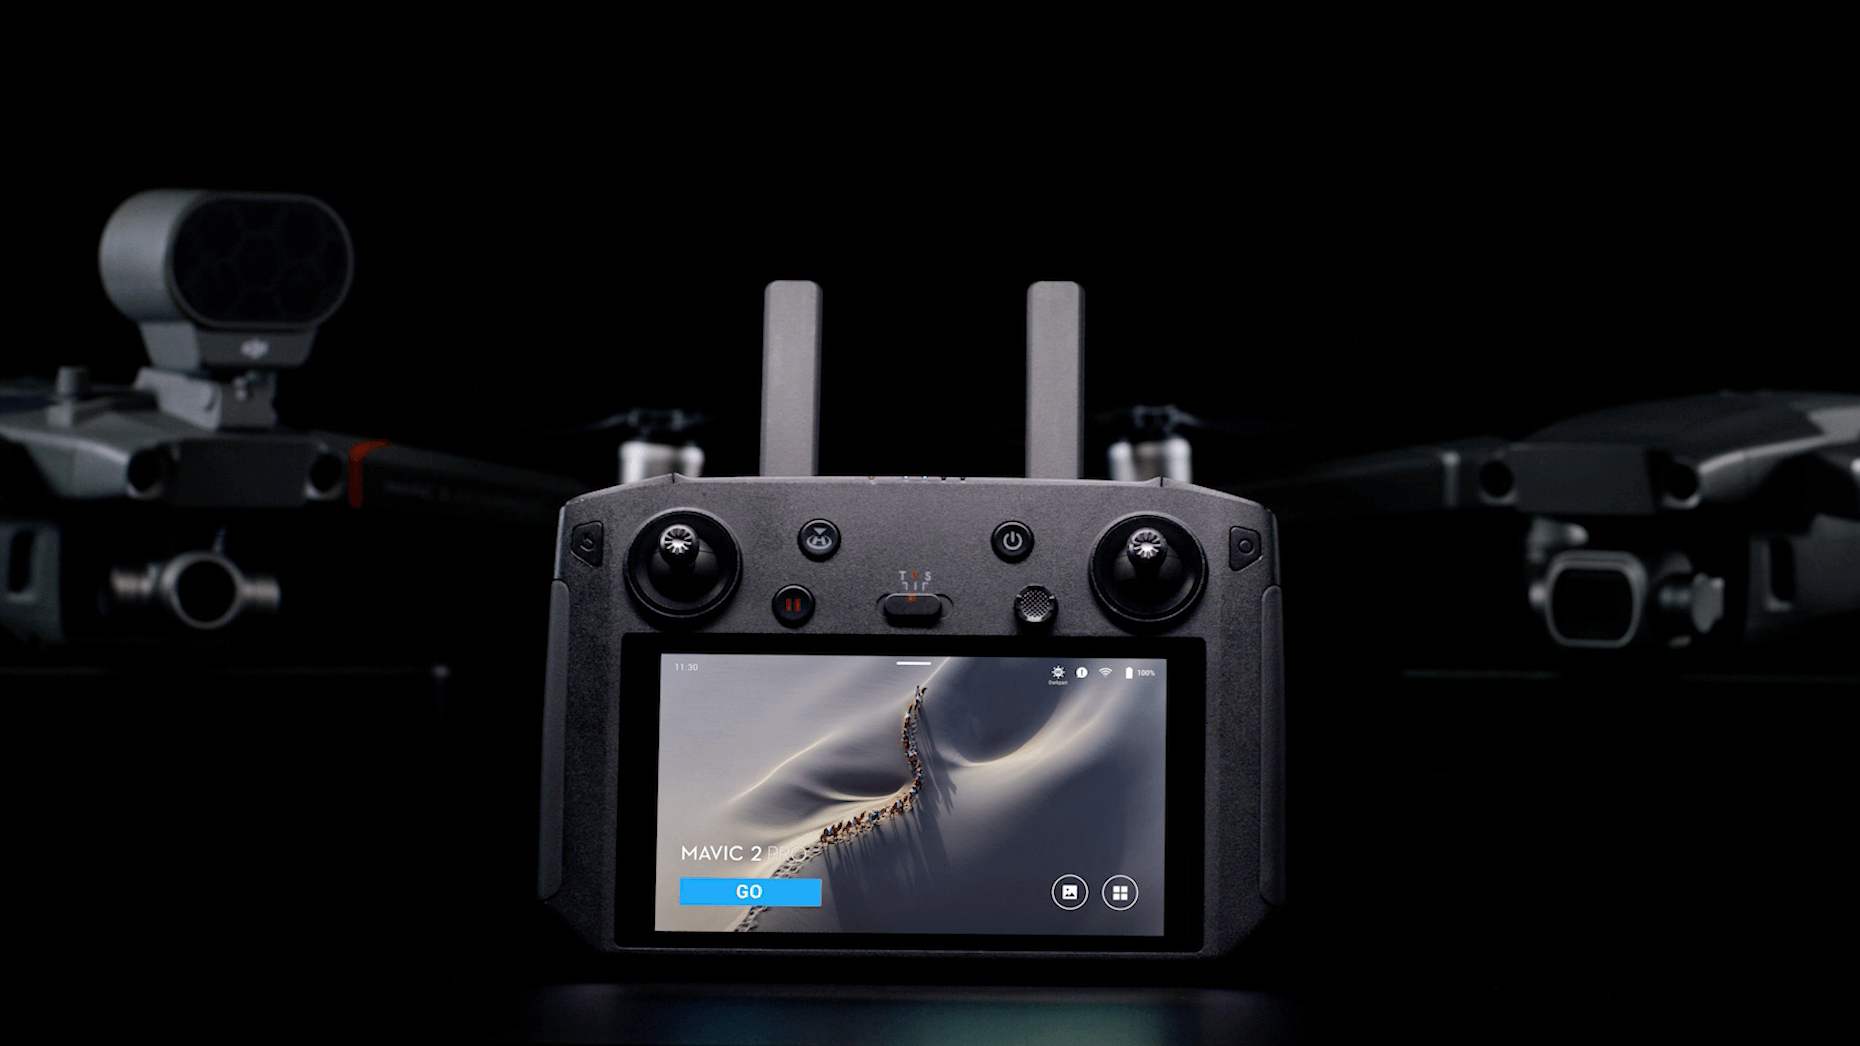 DJI Smart Controller - Designed to maximize your outdoor